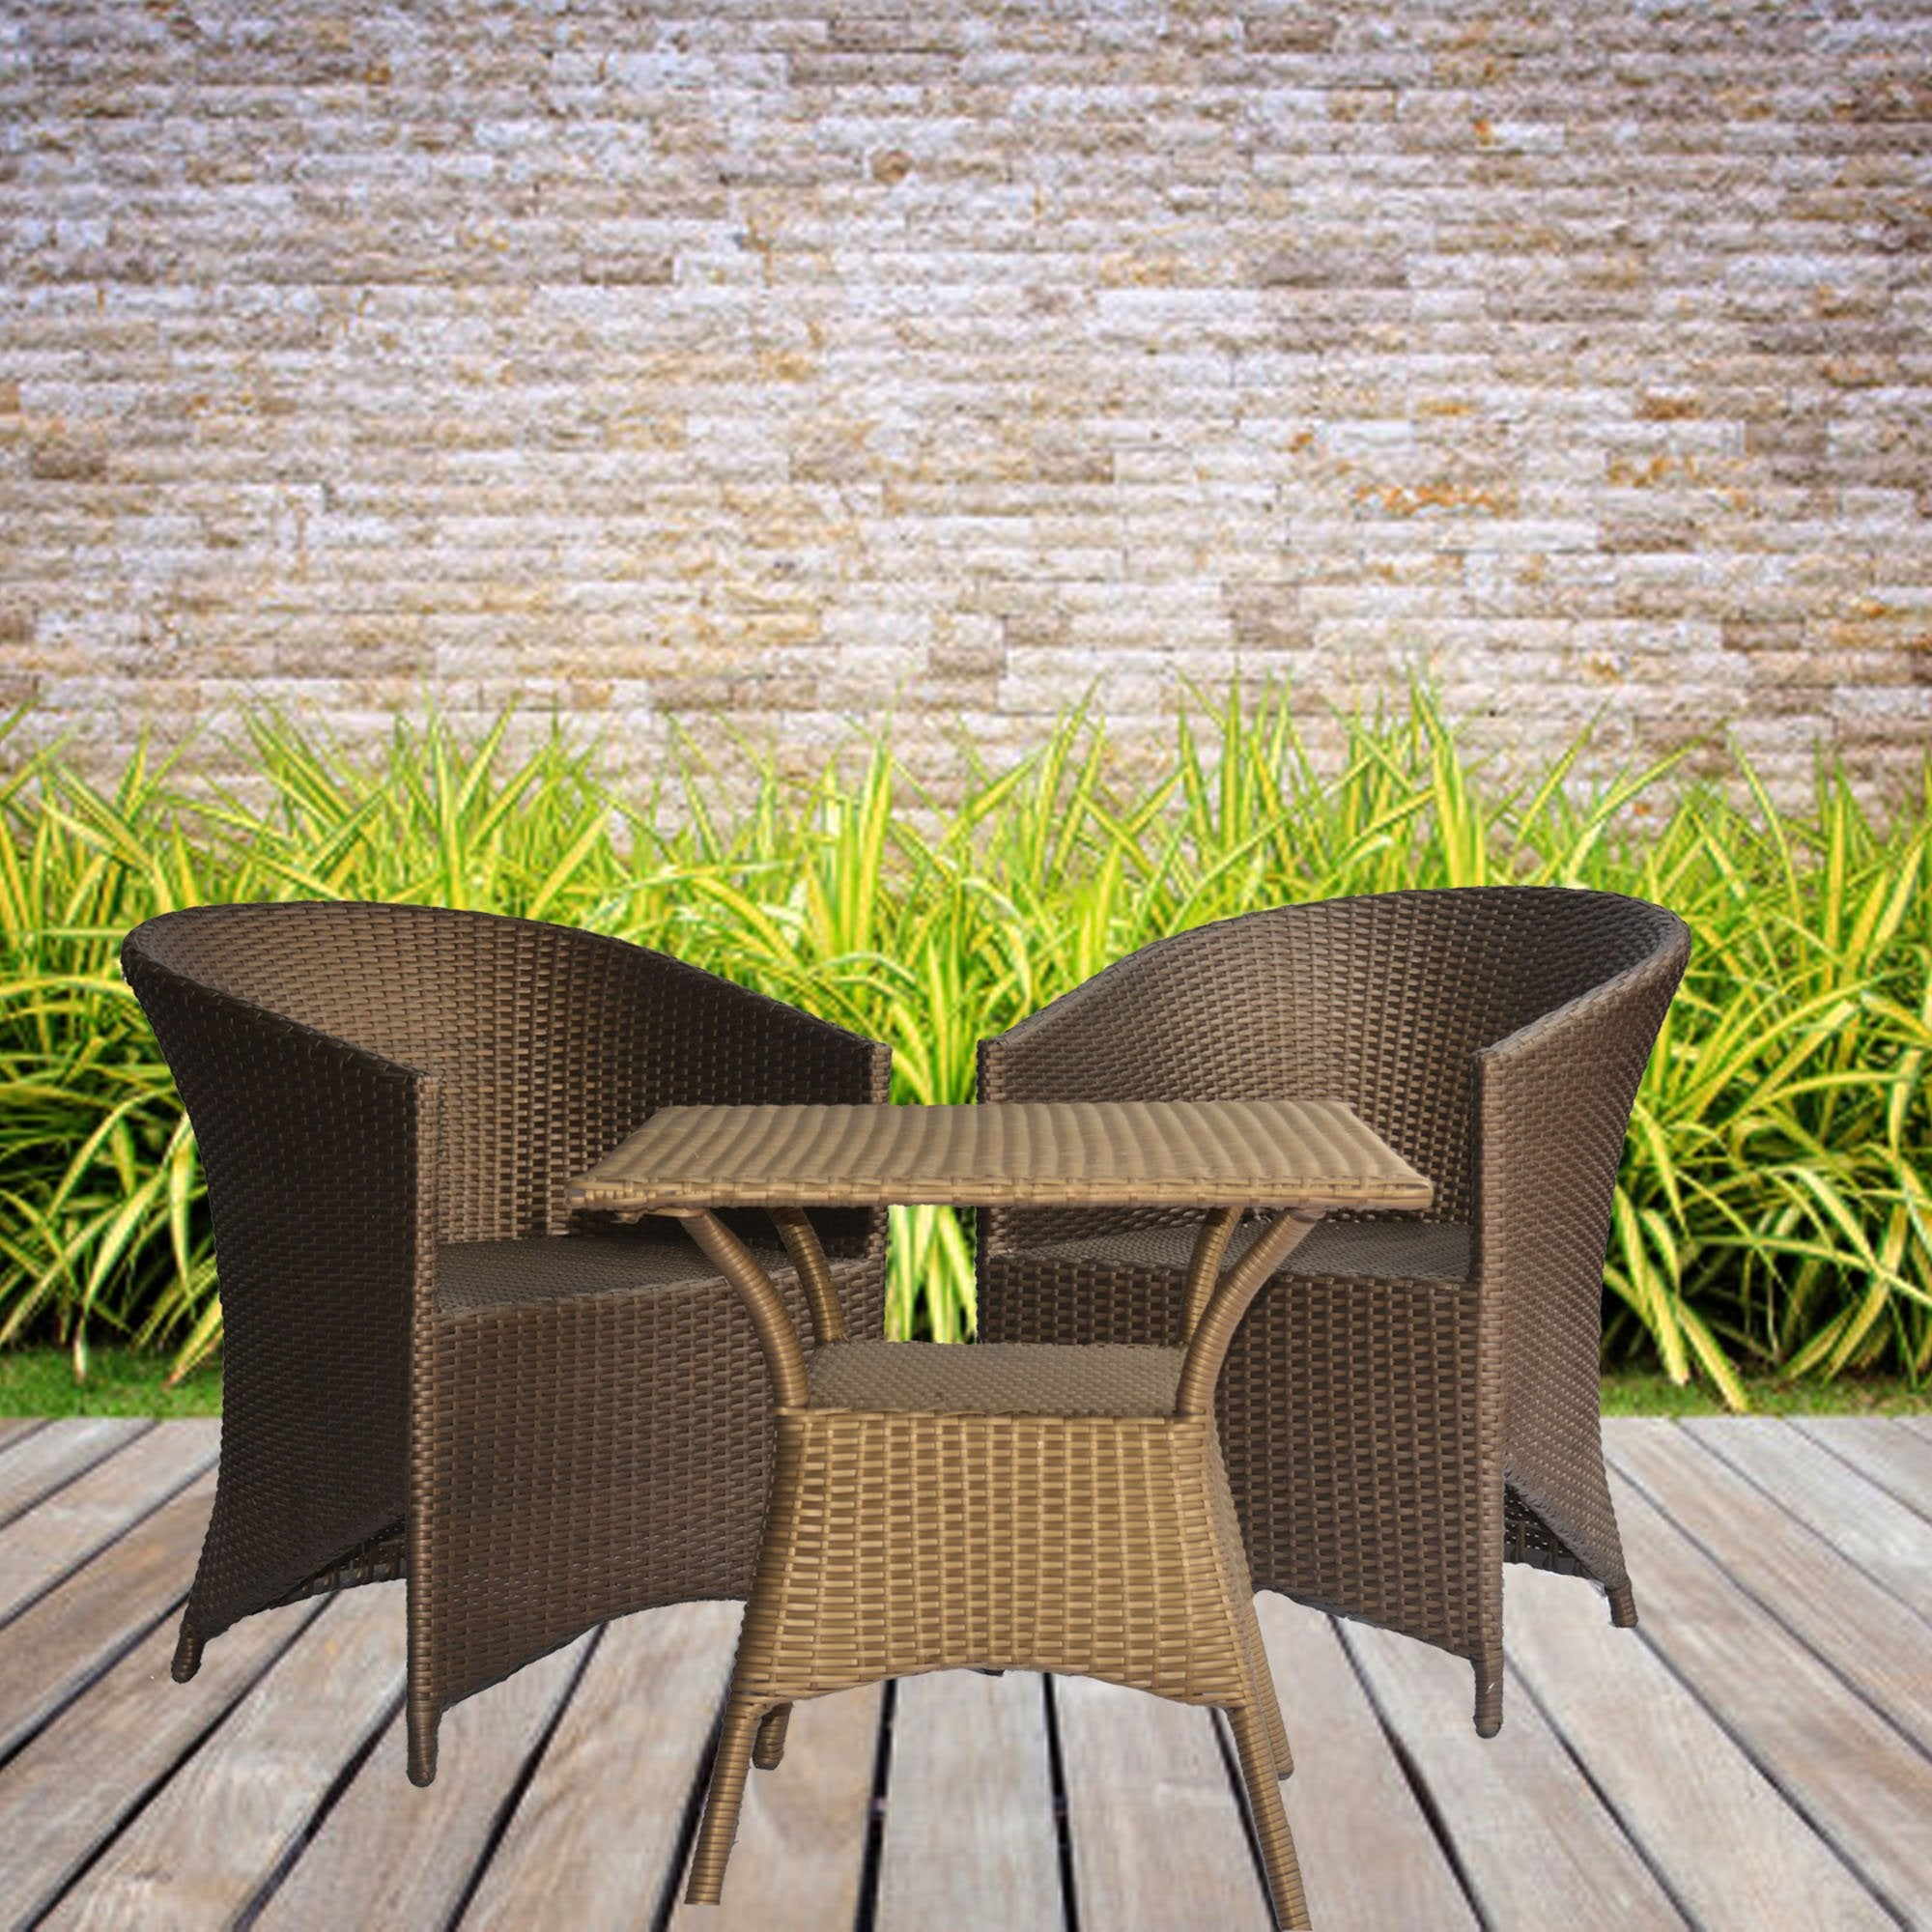 Outdoor Patio Set in Brown Color